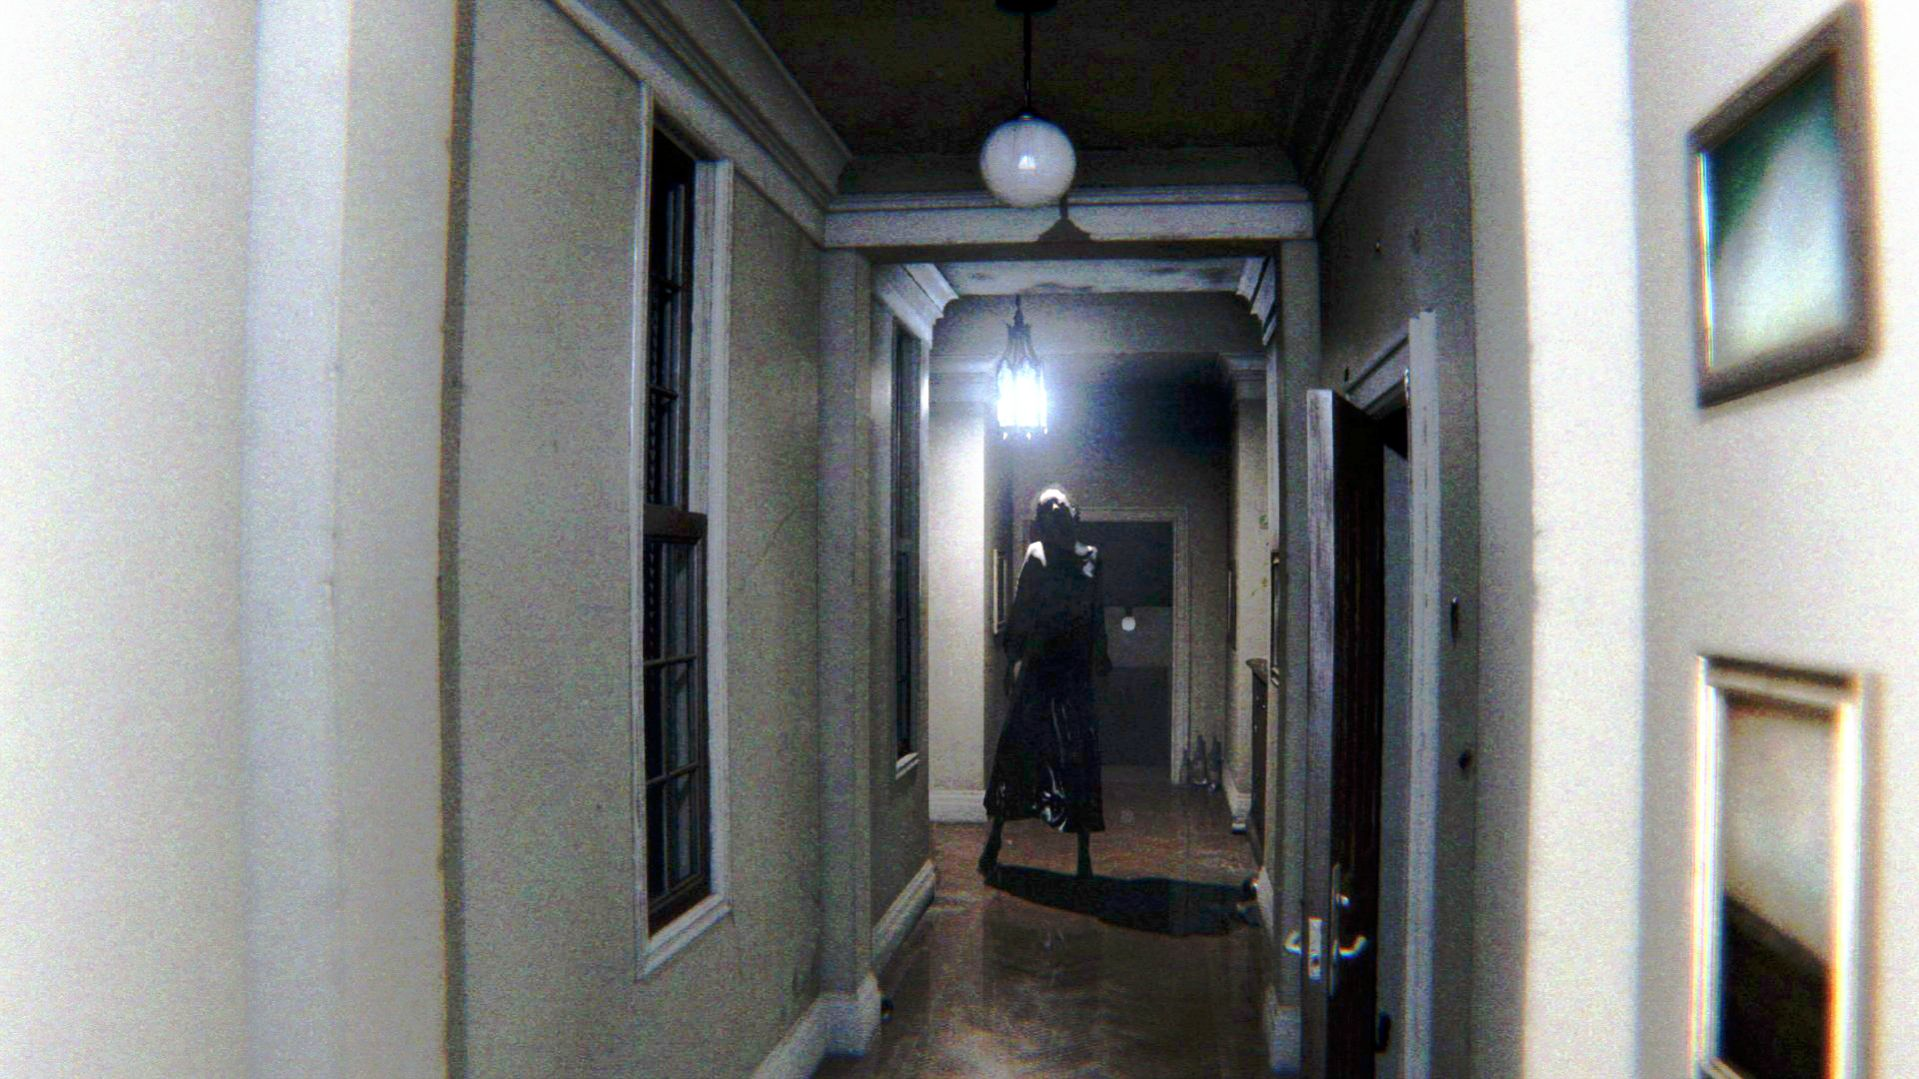 Silent Hills P.T. is absolutely